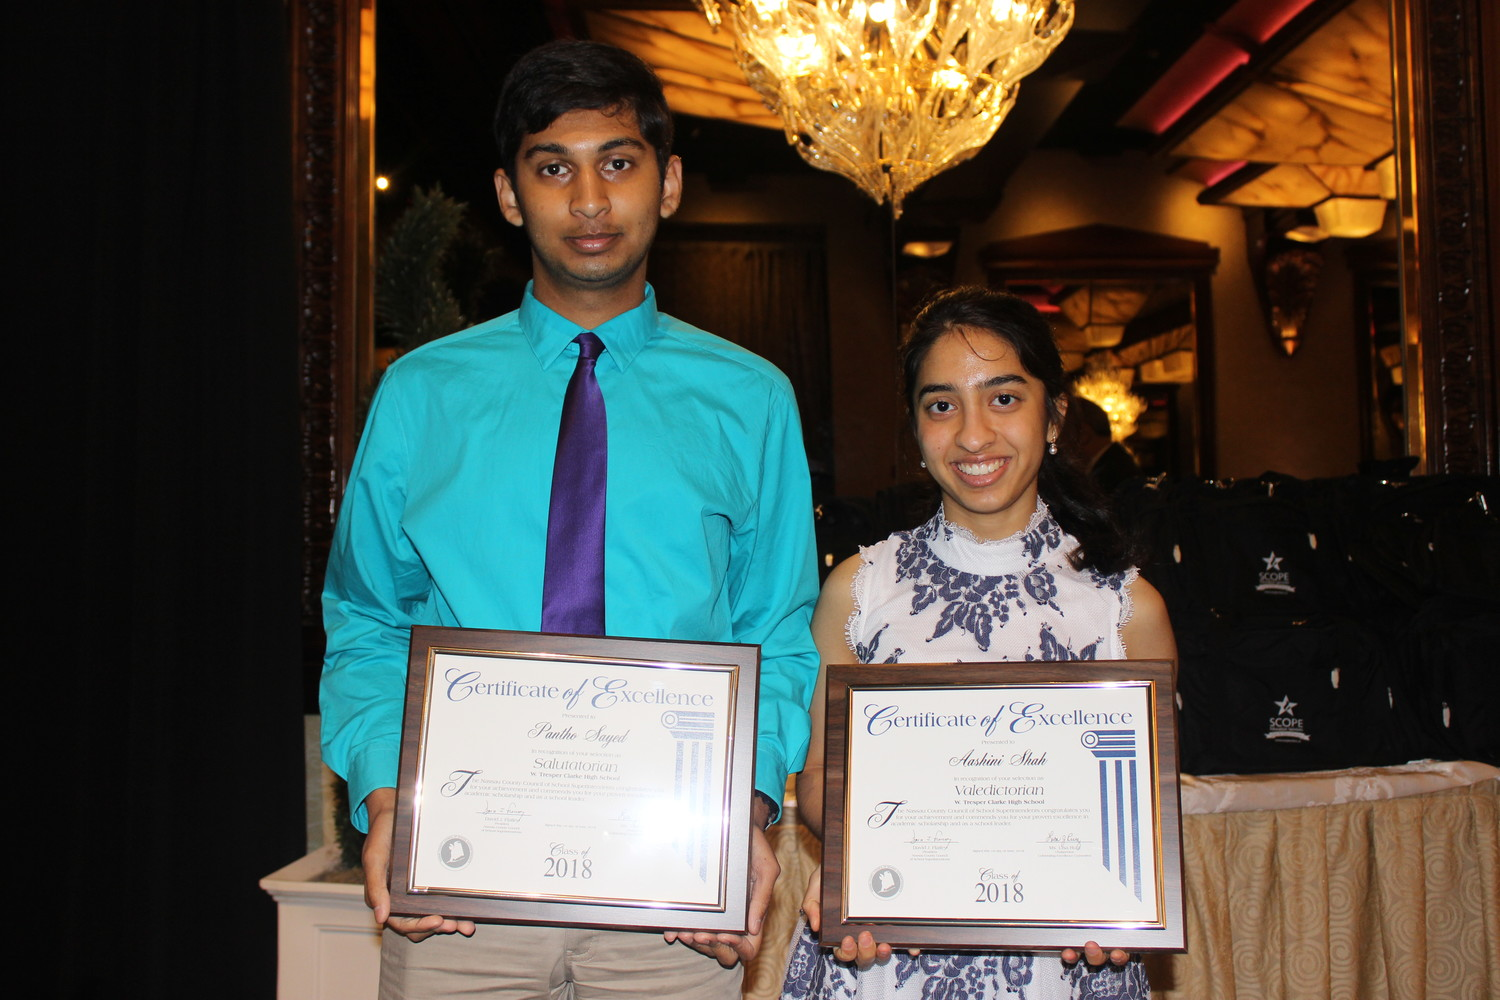 Aashini Shah and Pantho Sayed, the salutatorian of W.T. Clarke, were honored by Nassau County at a breakfast at the Crest Hollow in Jericho on June 1.